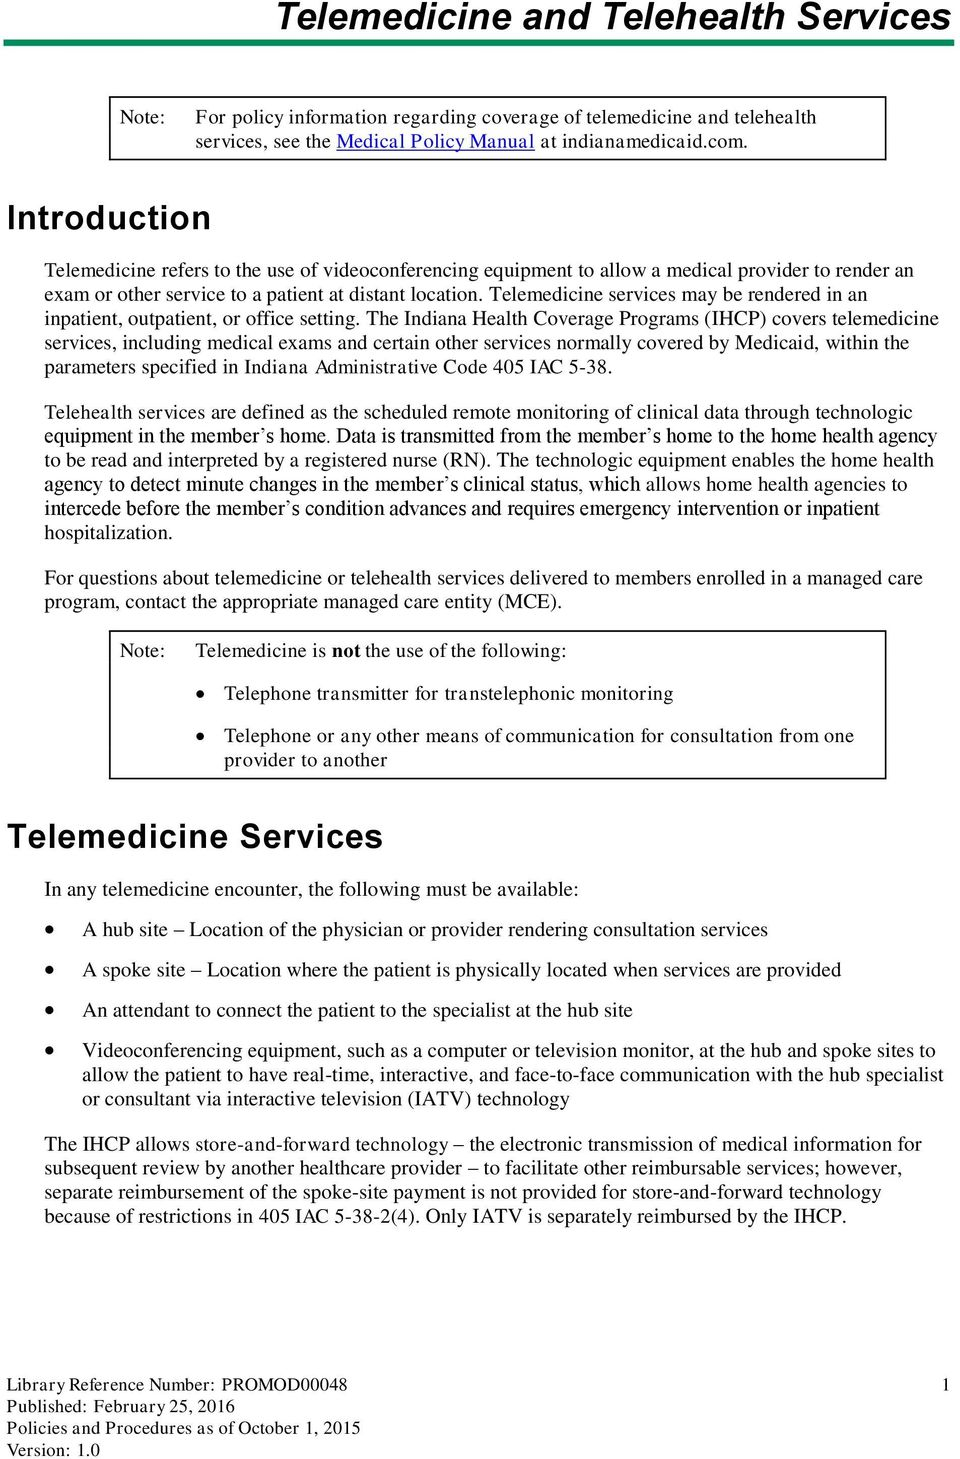 Telemedicine services may be rendered in an inpatient, outpatient, or office setting.